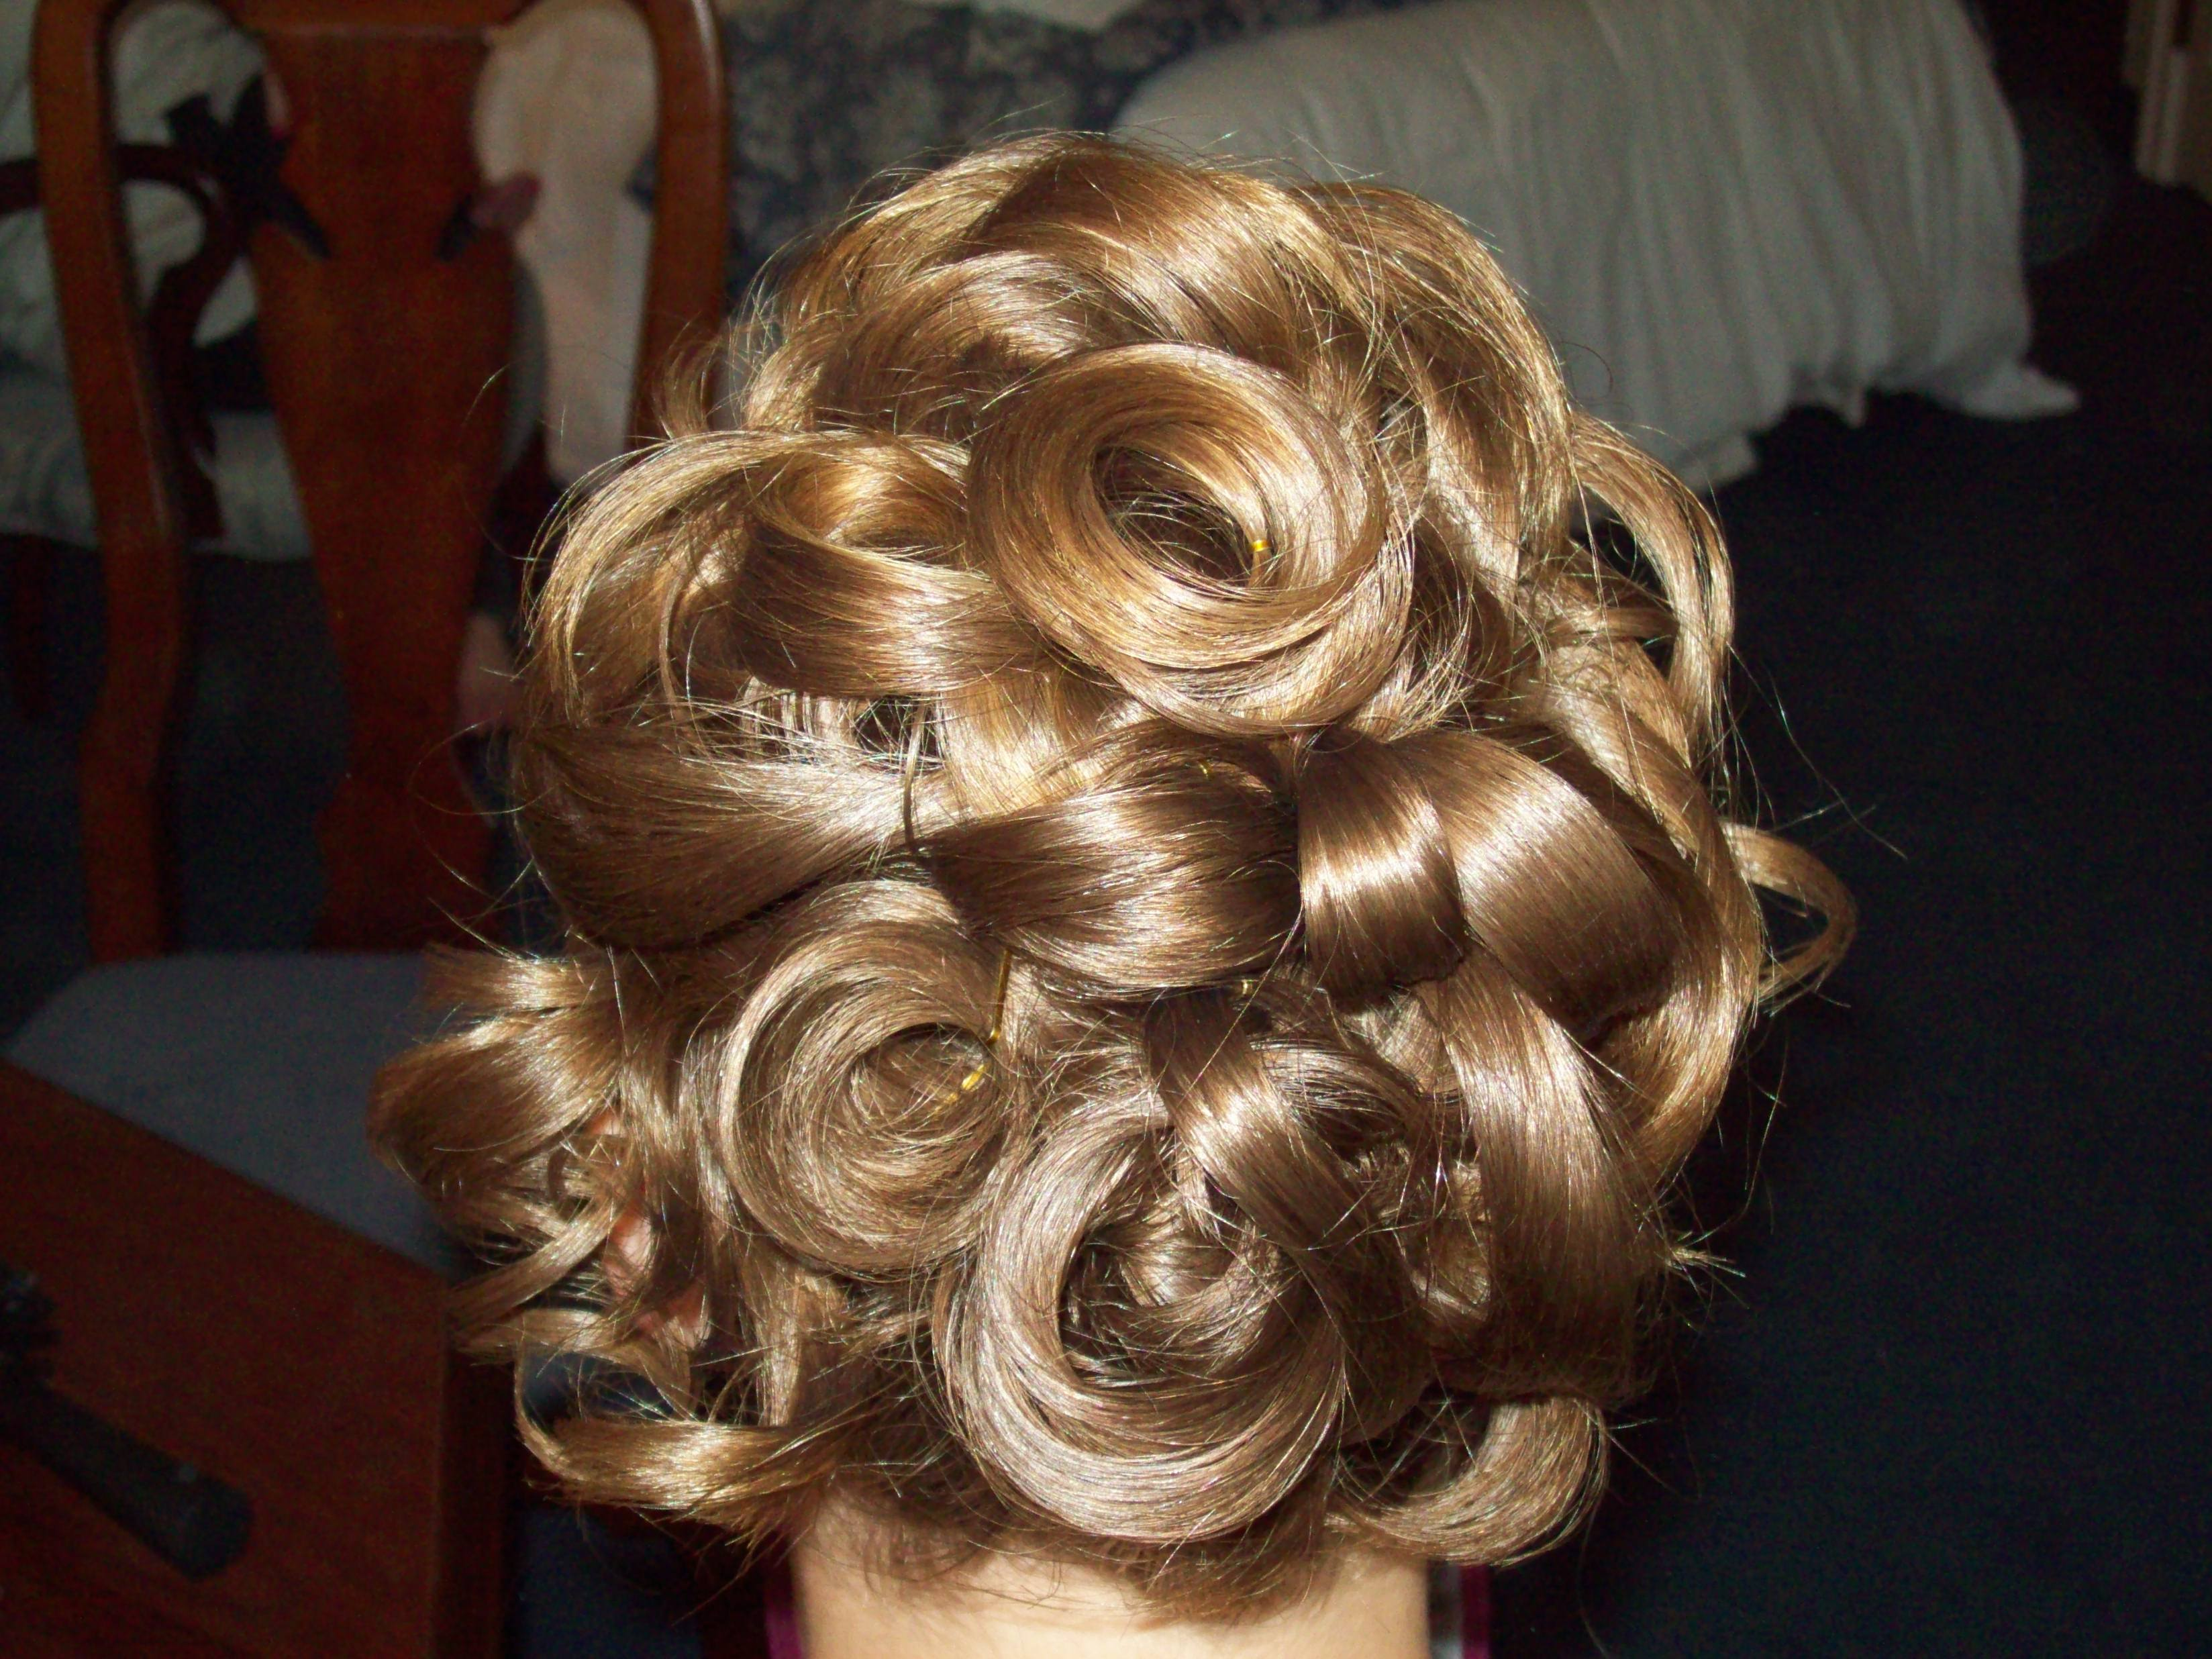 Updo, Bridesmaid, Curls, Keri anne shea beauty